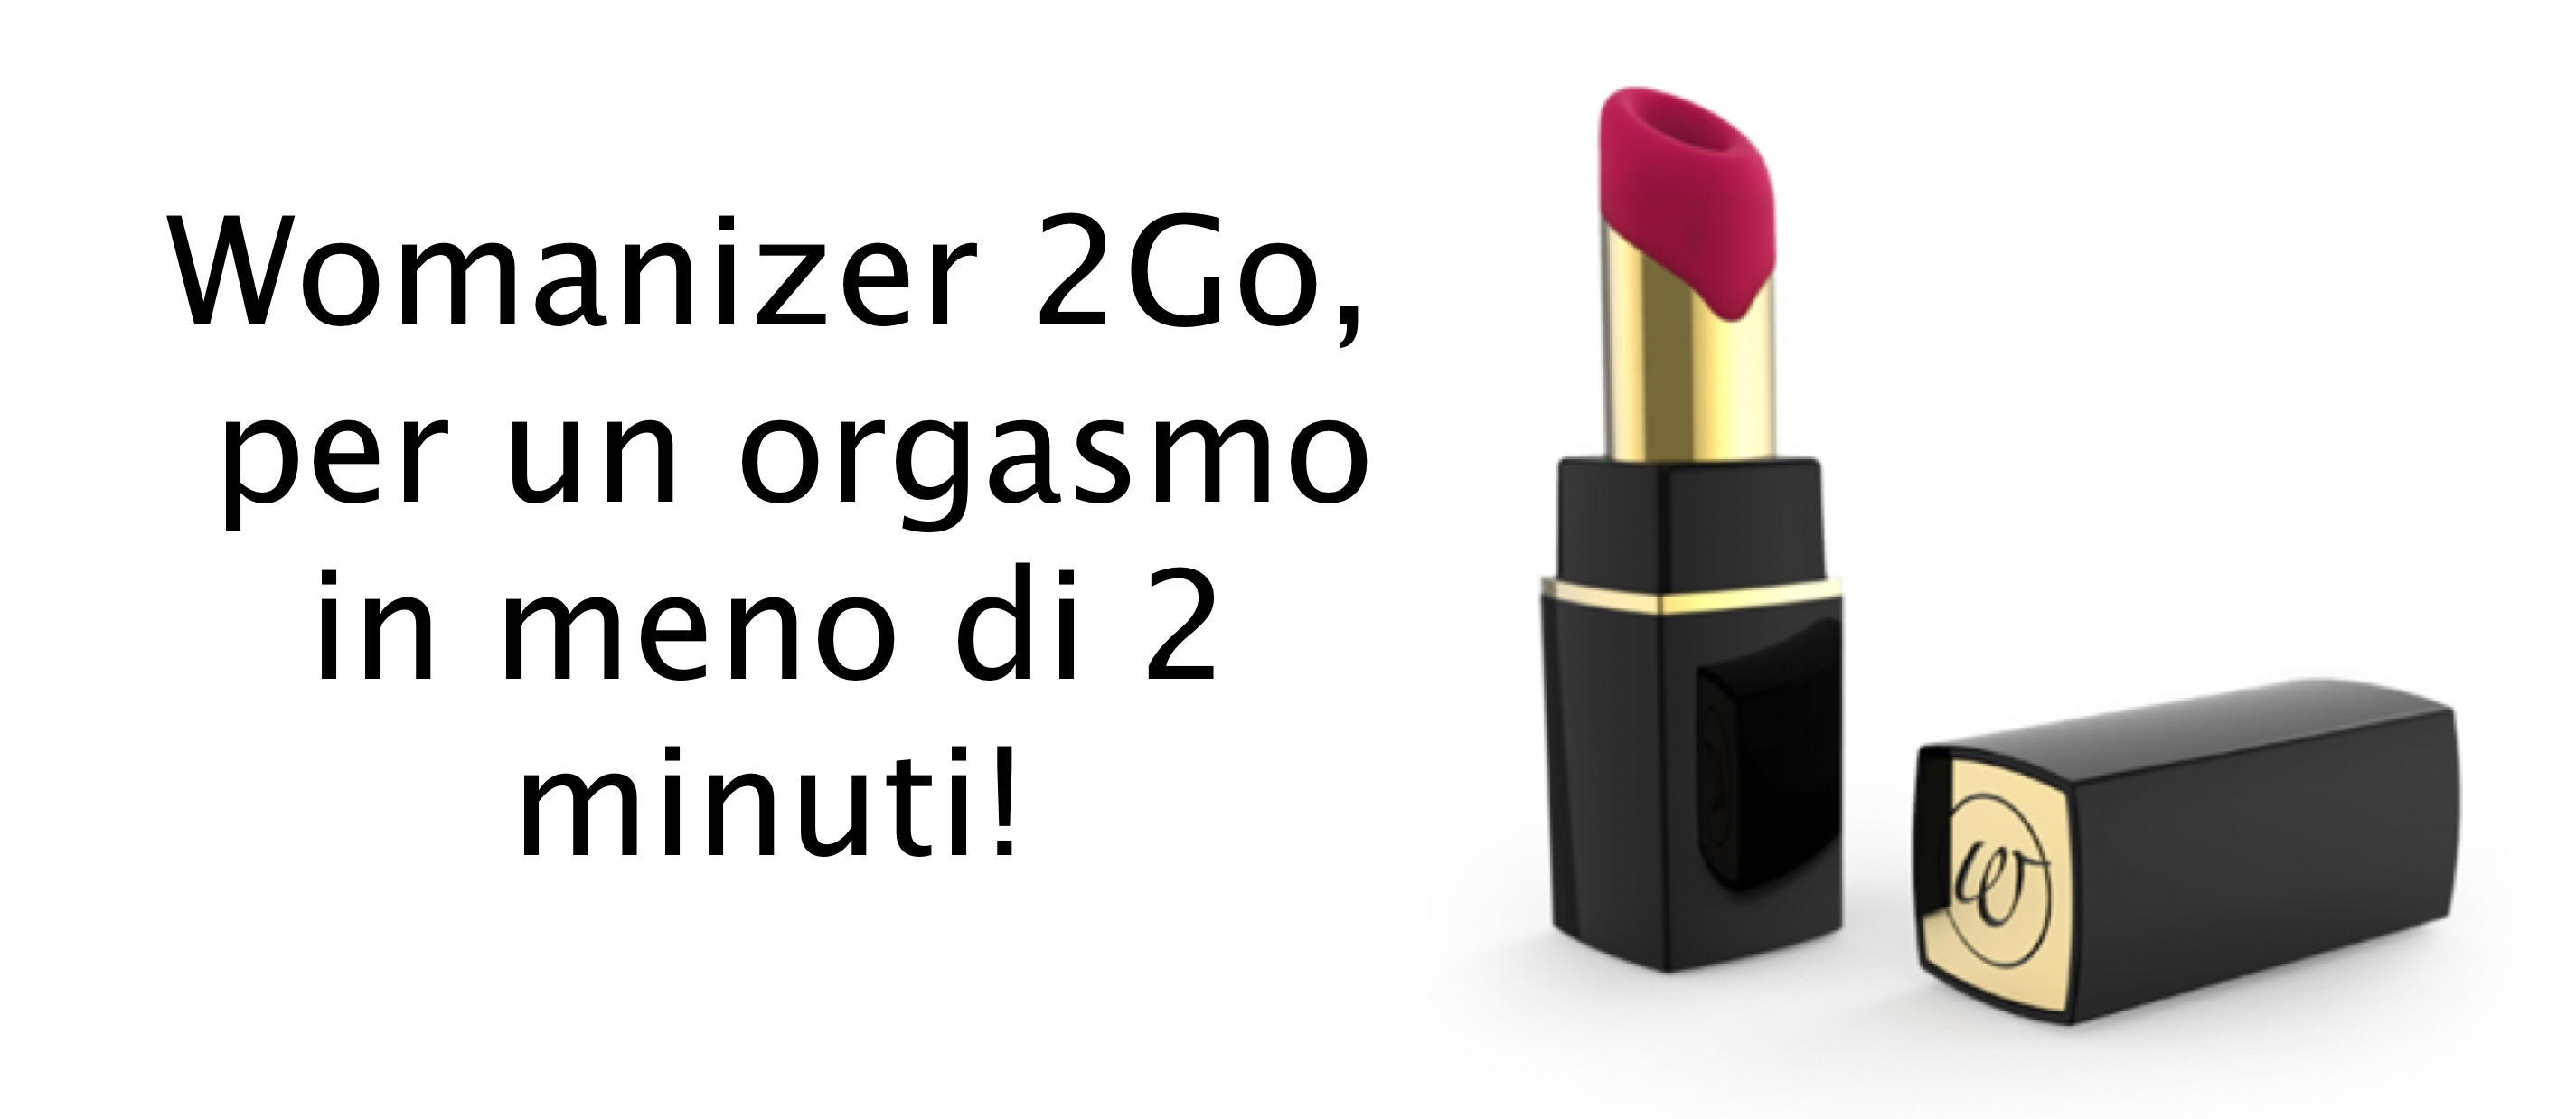 Womanizer 2 go